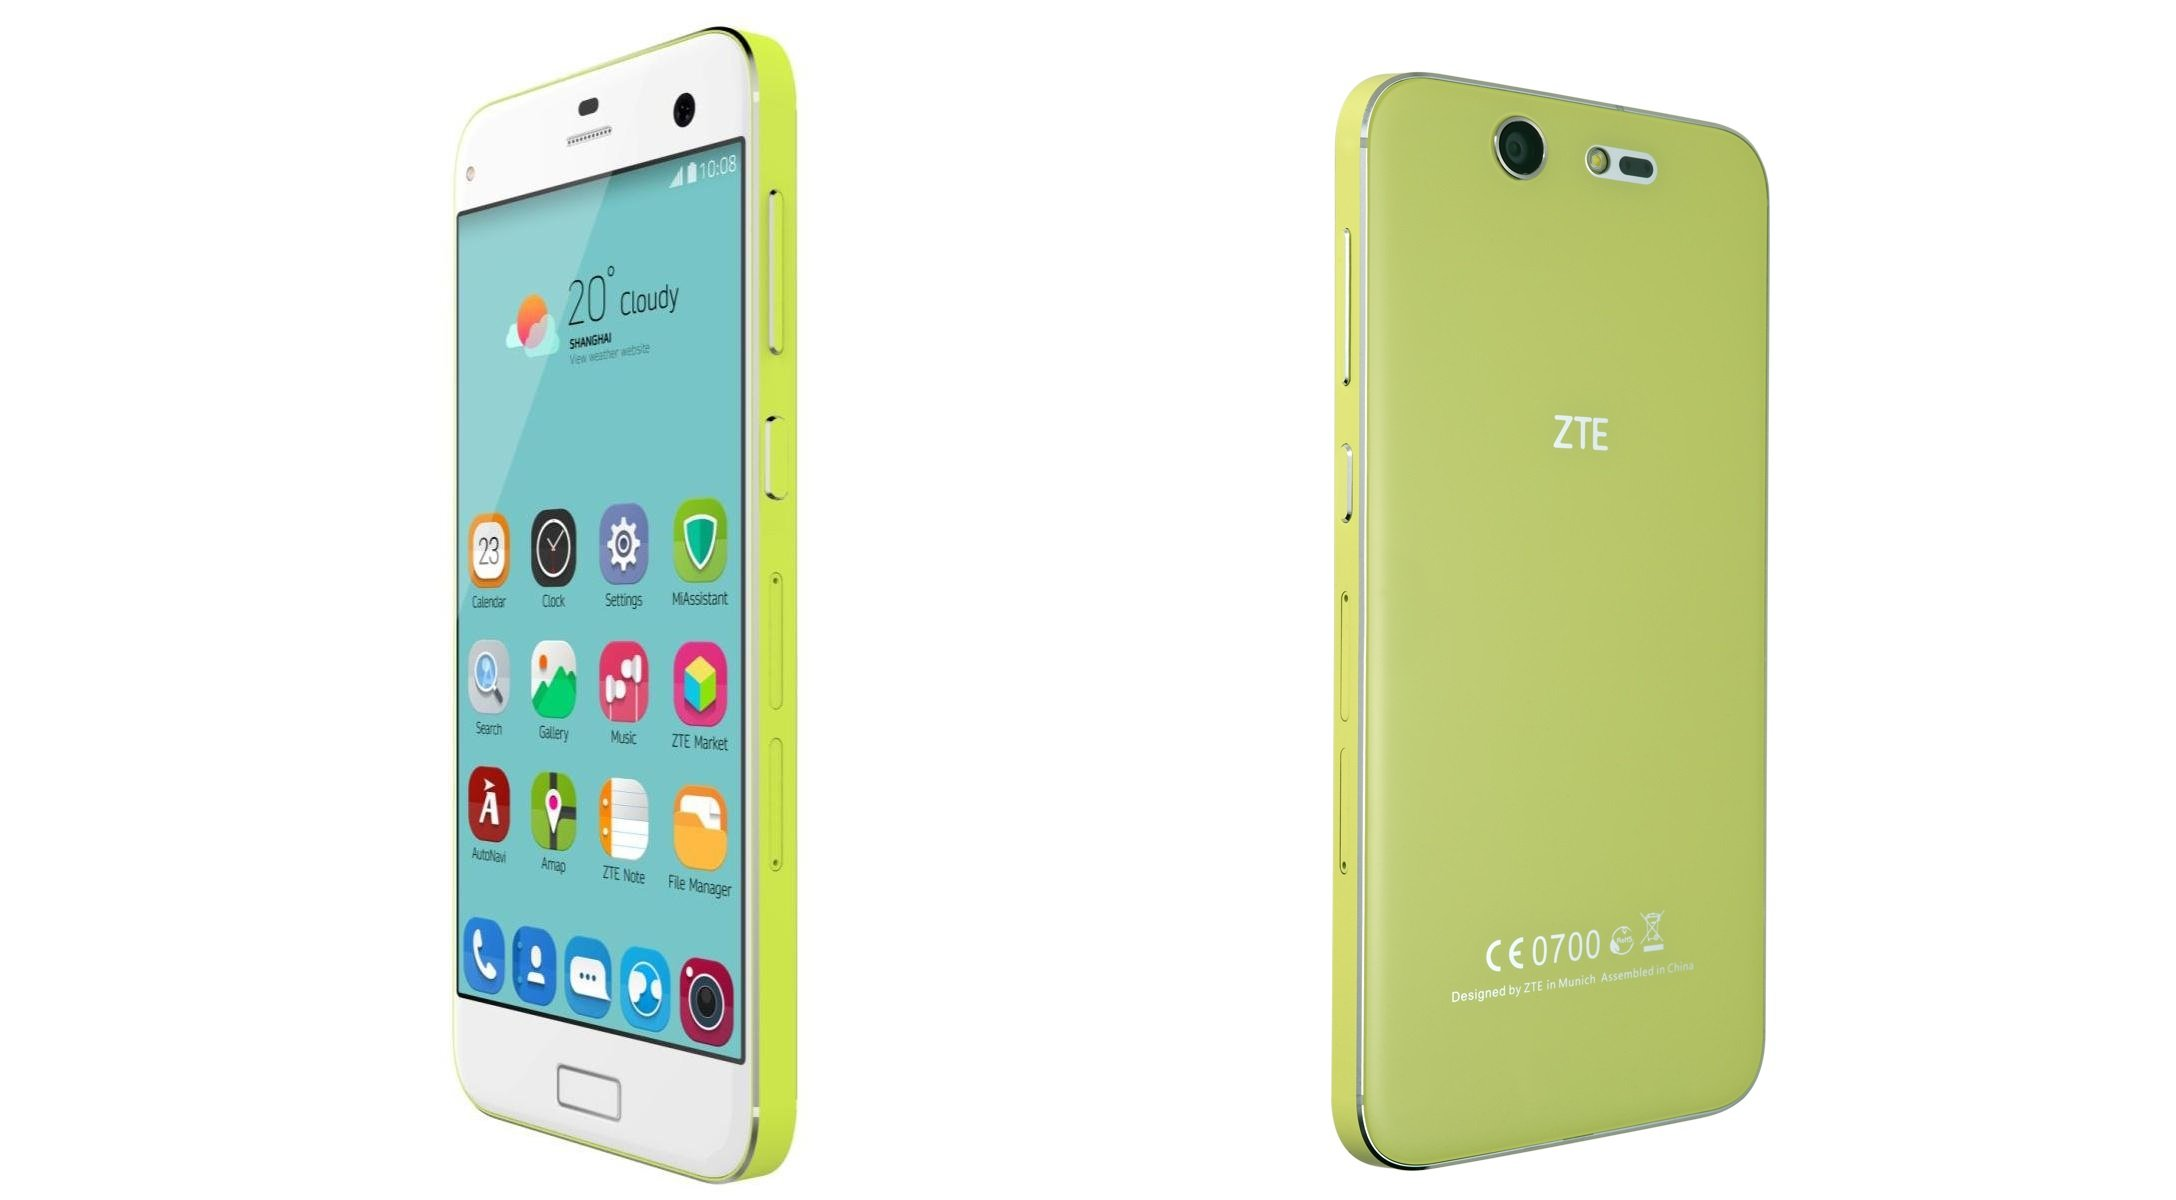 ZTE mobile Price in Nepal (Updated) | Cost of latest ZTE smartphones